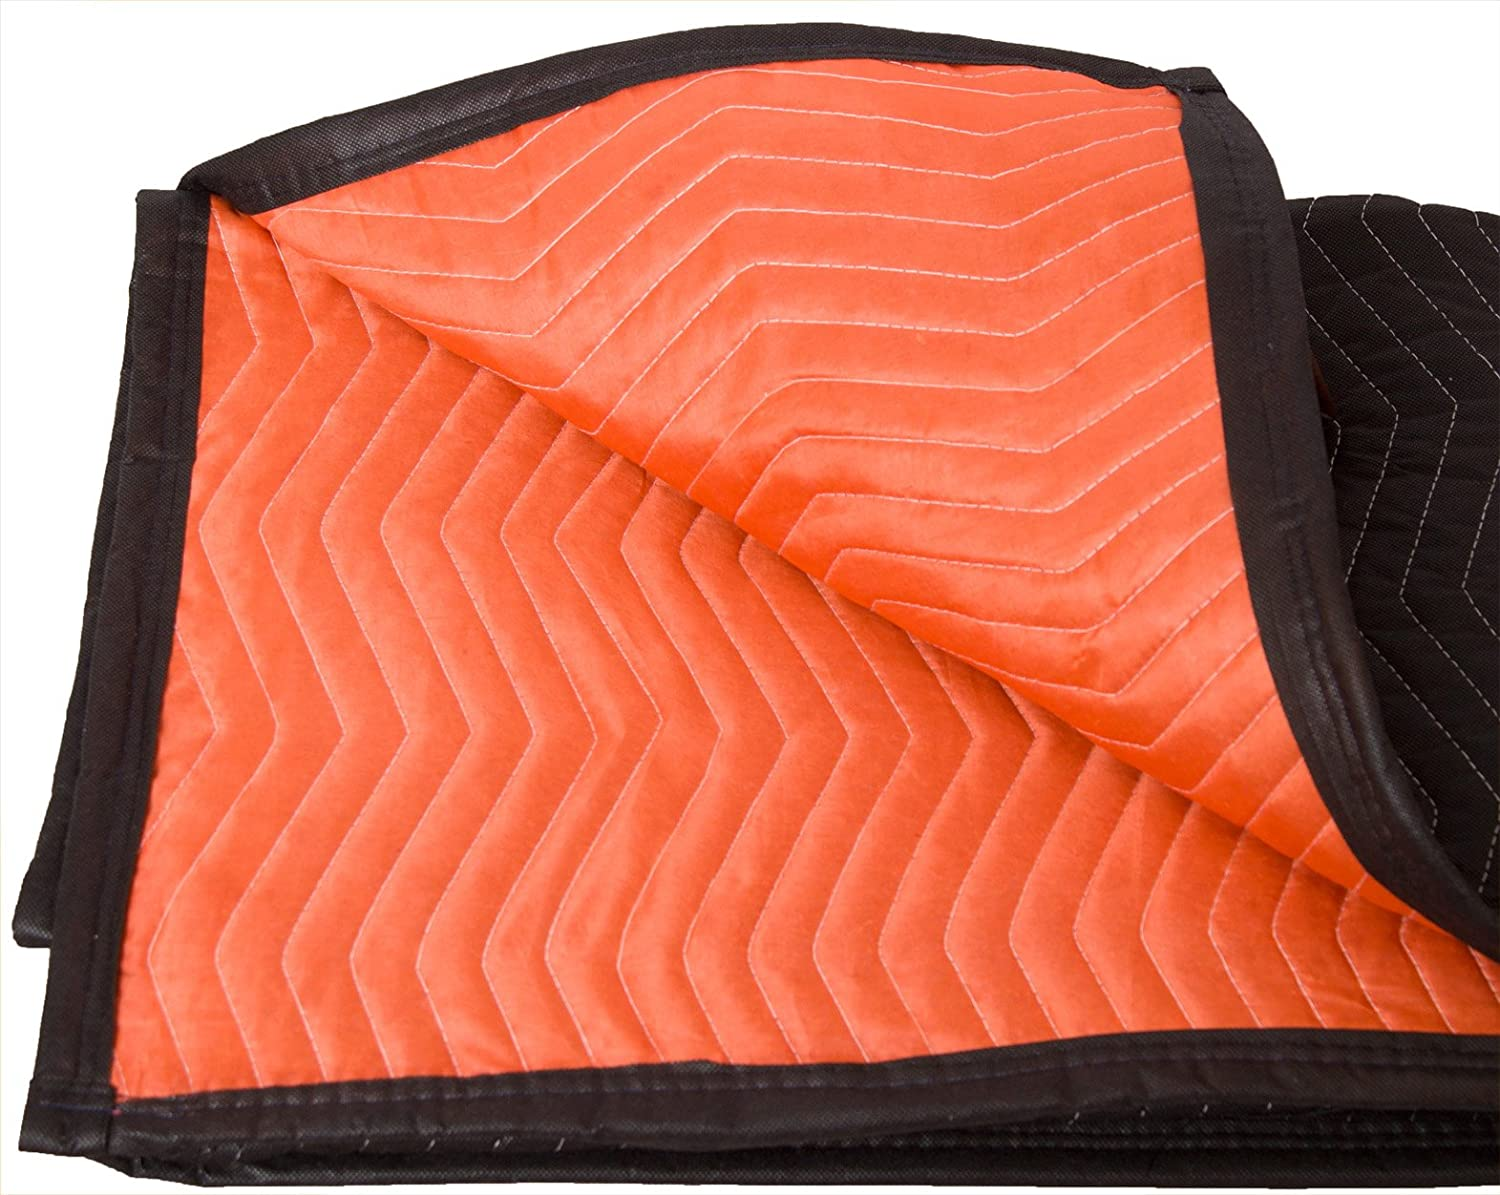 "Forearm Forklift FFMB Full Size Medium Weight Quilted Moving Blanket (45.6 lb/dz), 72"" x 80"", Blaze Orange/Black"